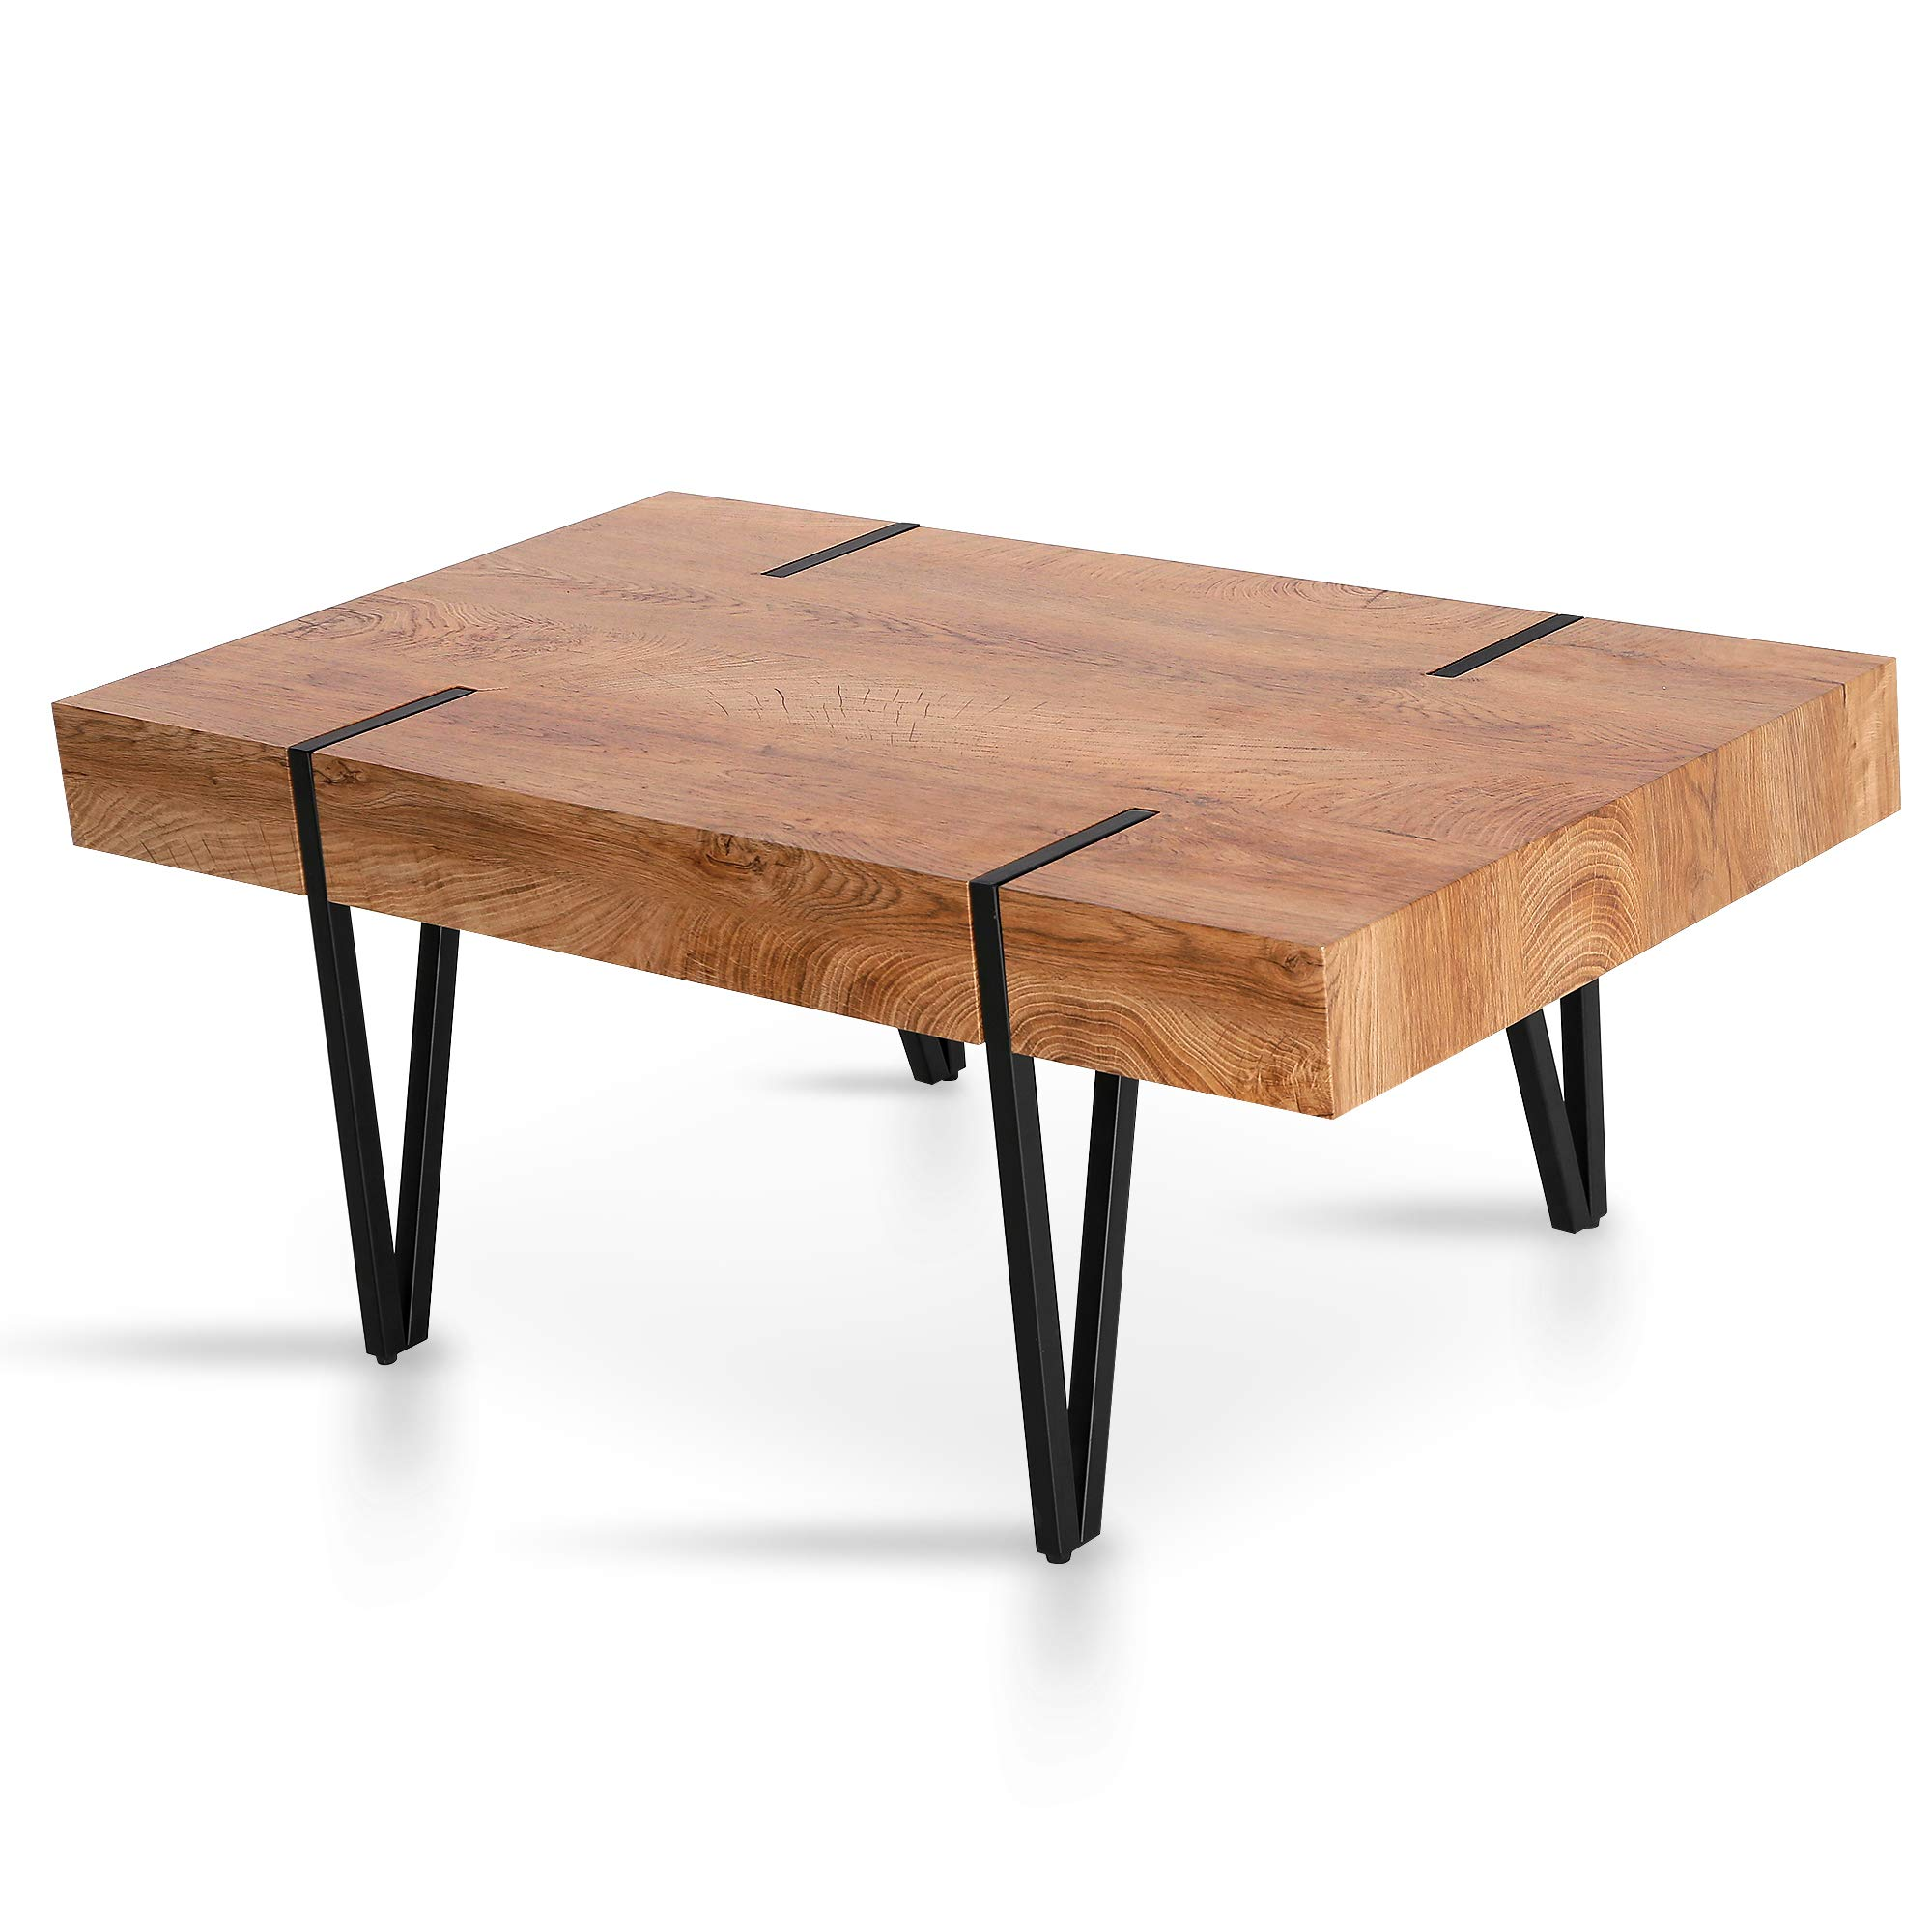 Mcombo Modern Industrial Coffee Table for Living Room Mid-Century Rustic Plant Table Top Sofa Table 42x24x17inch by MCombo